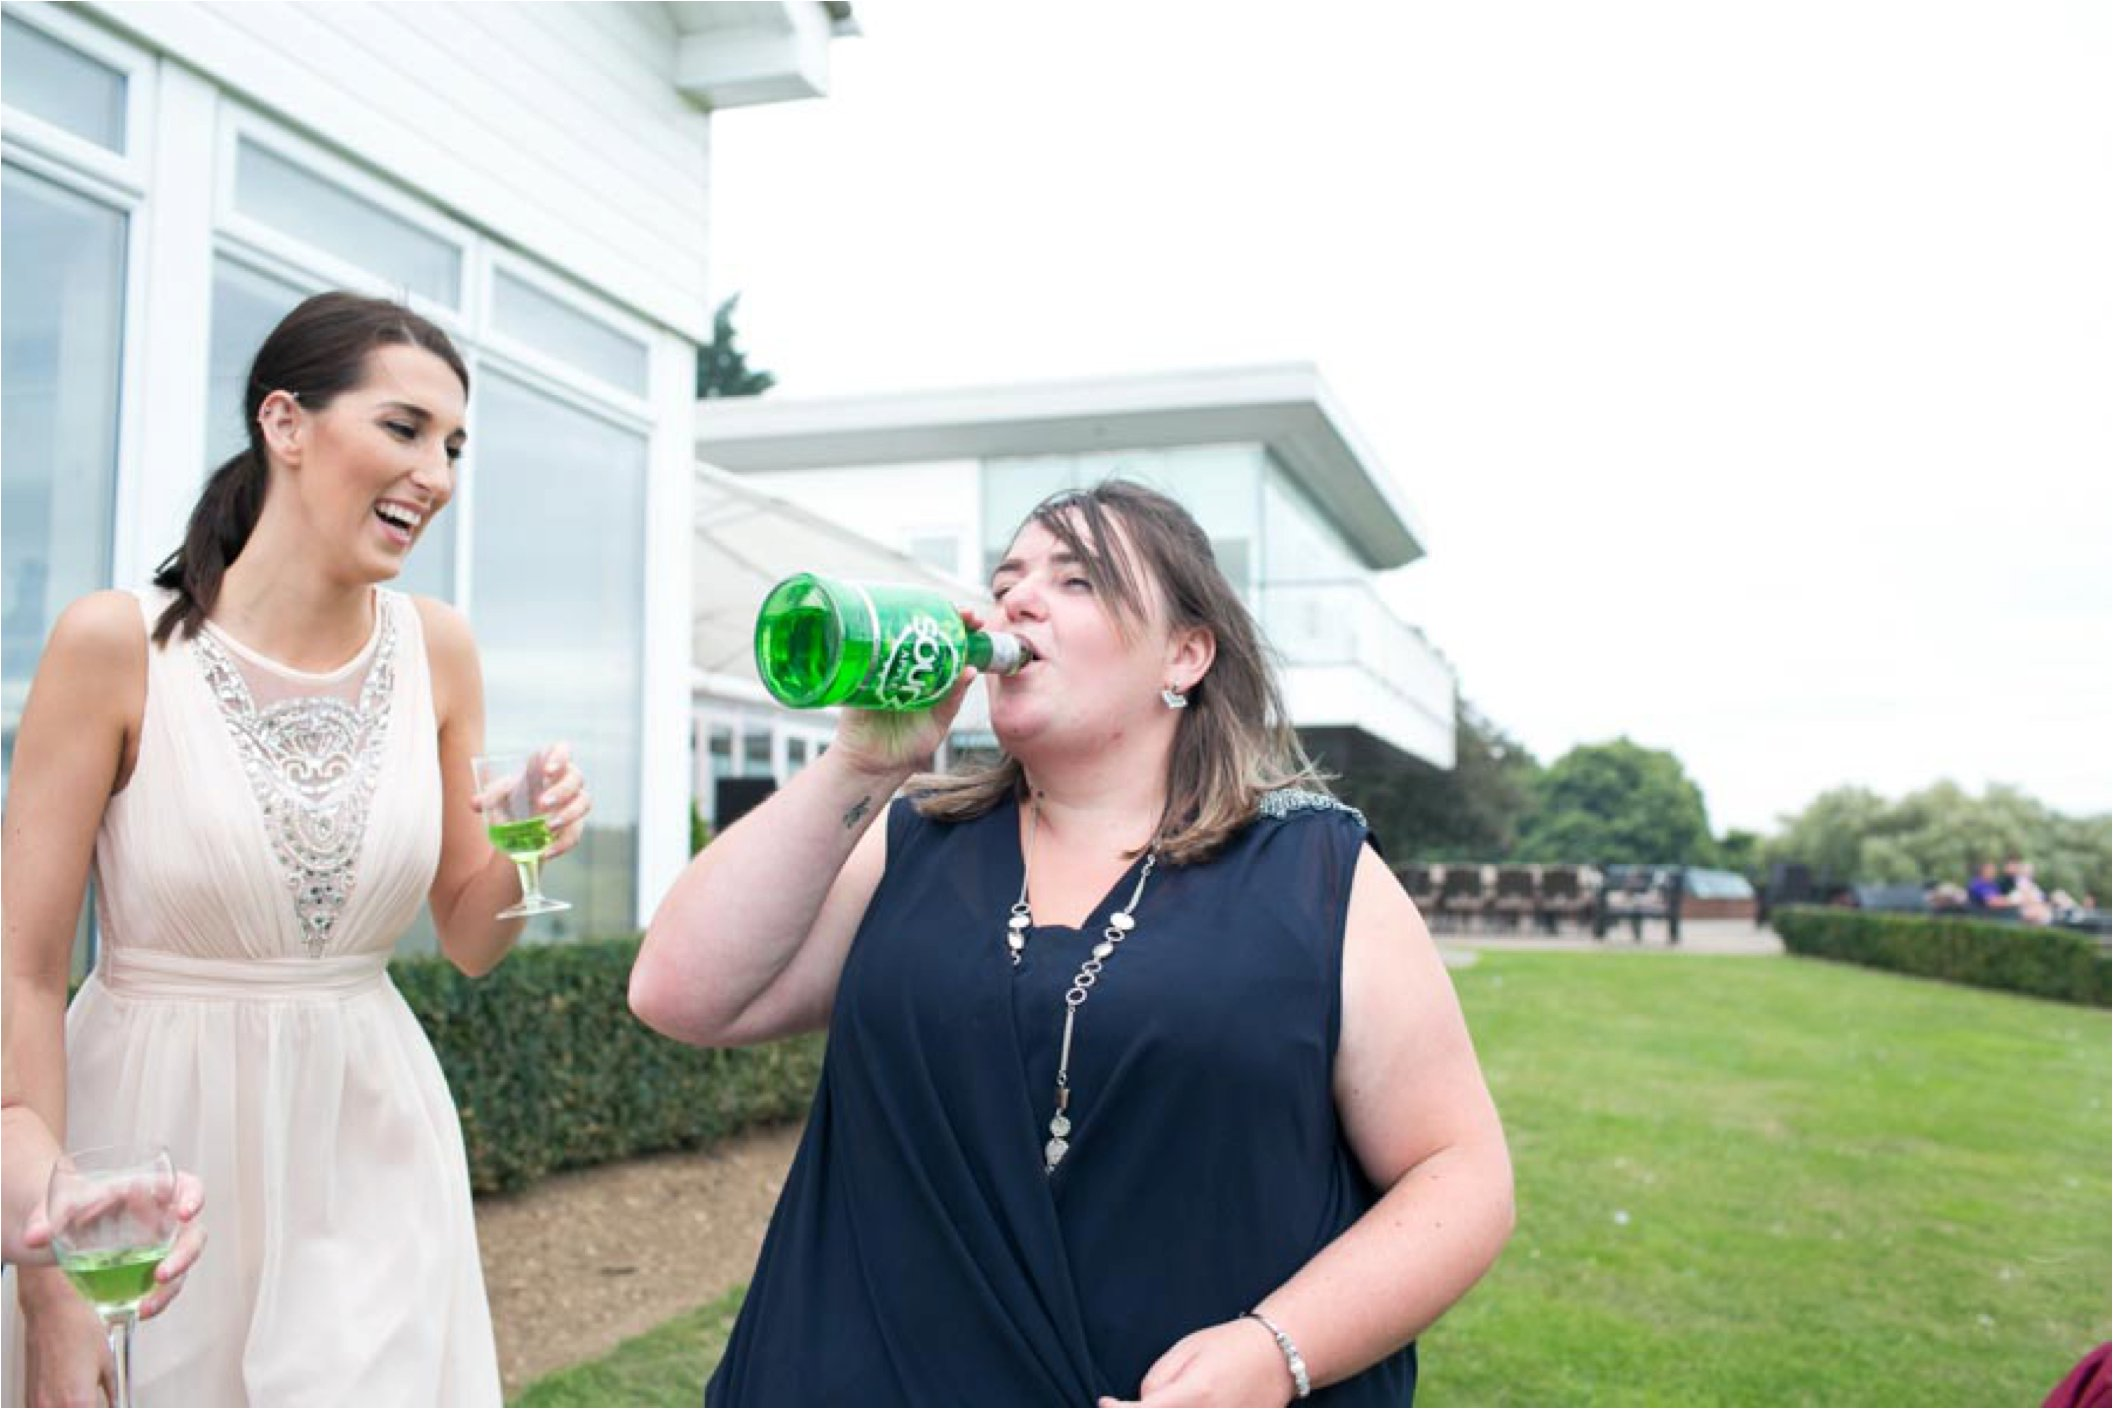 fun drinking shot bridesmaids at wedding stoke by nayland